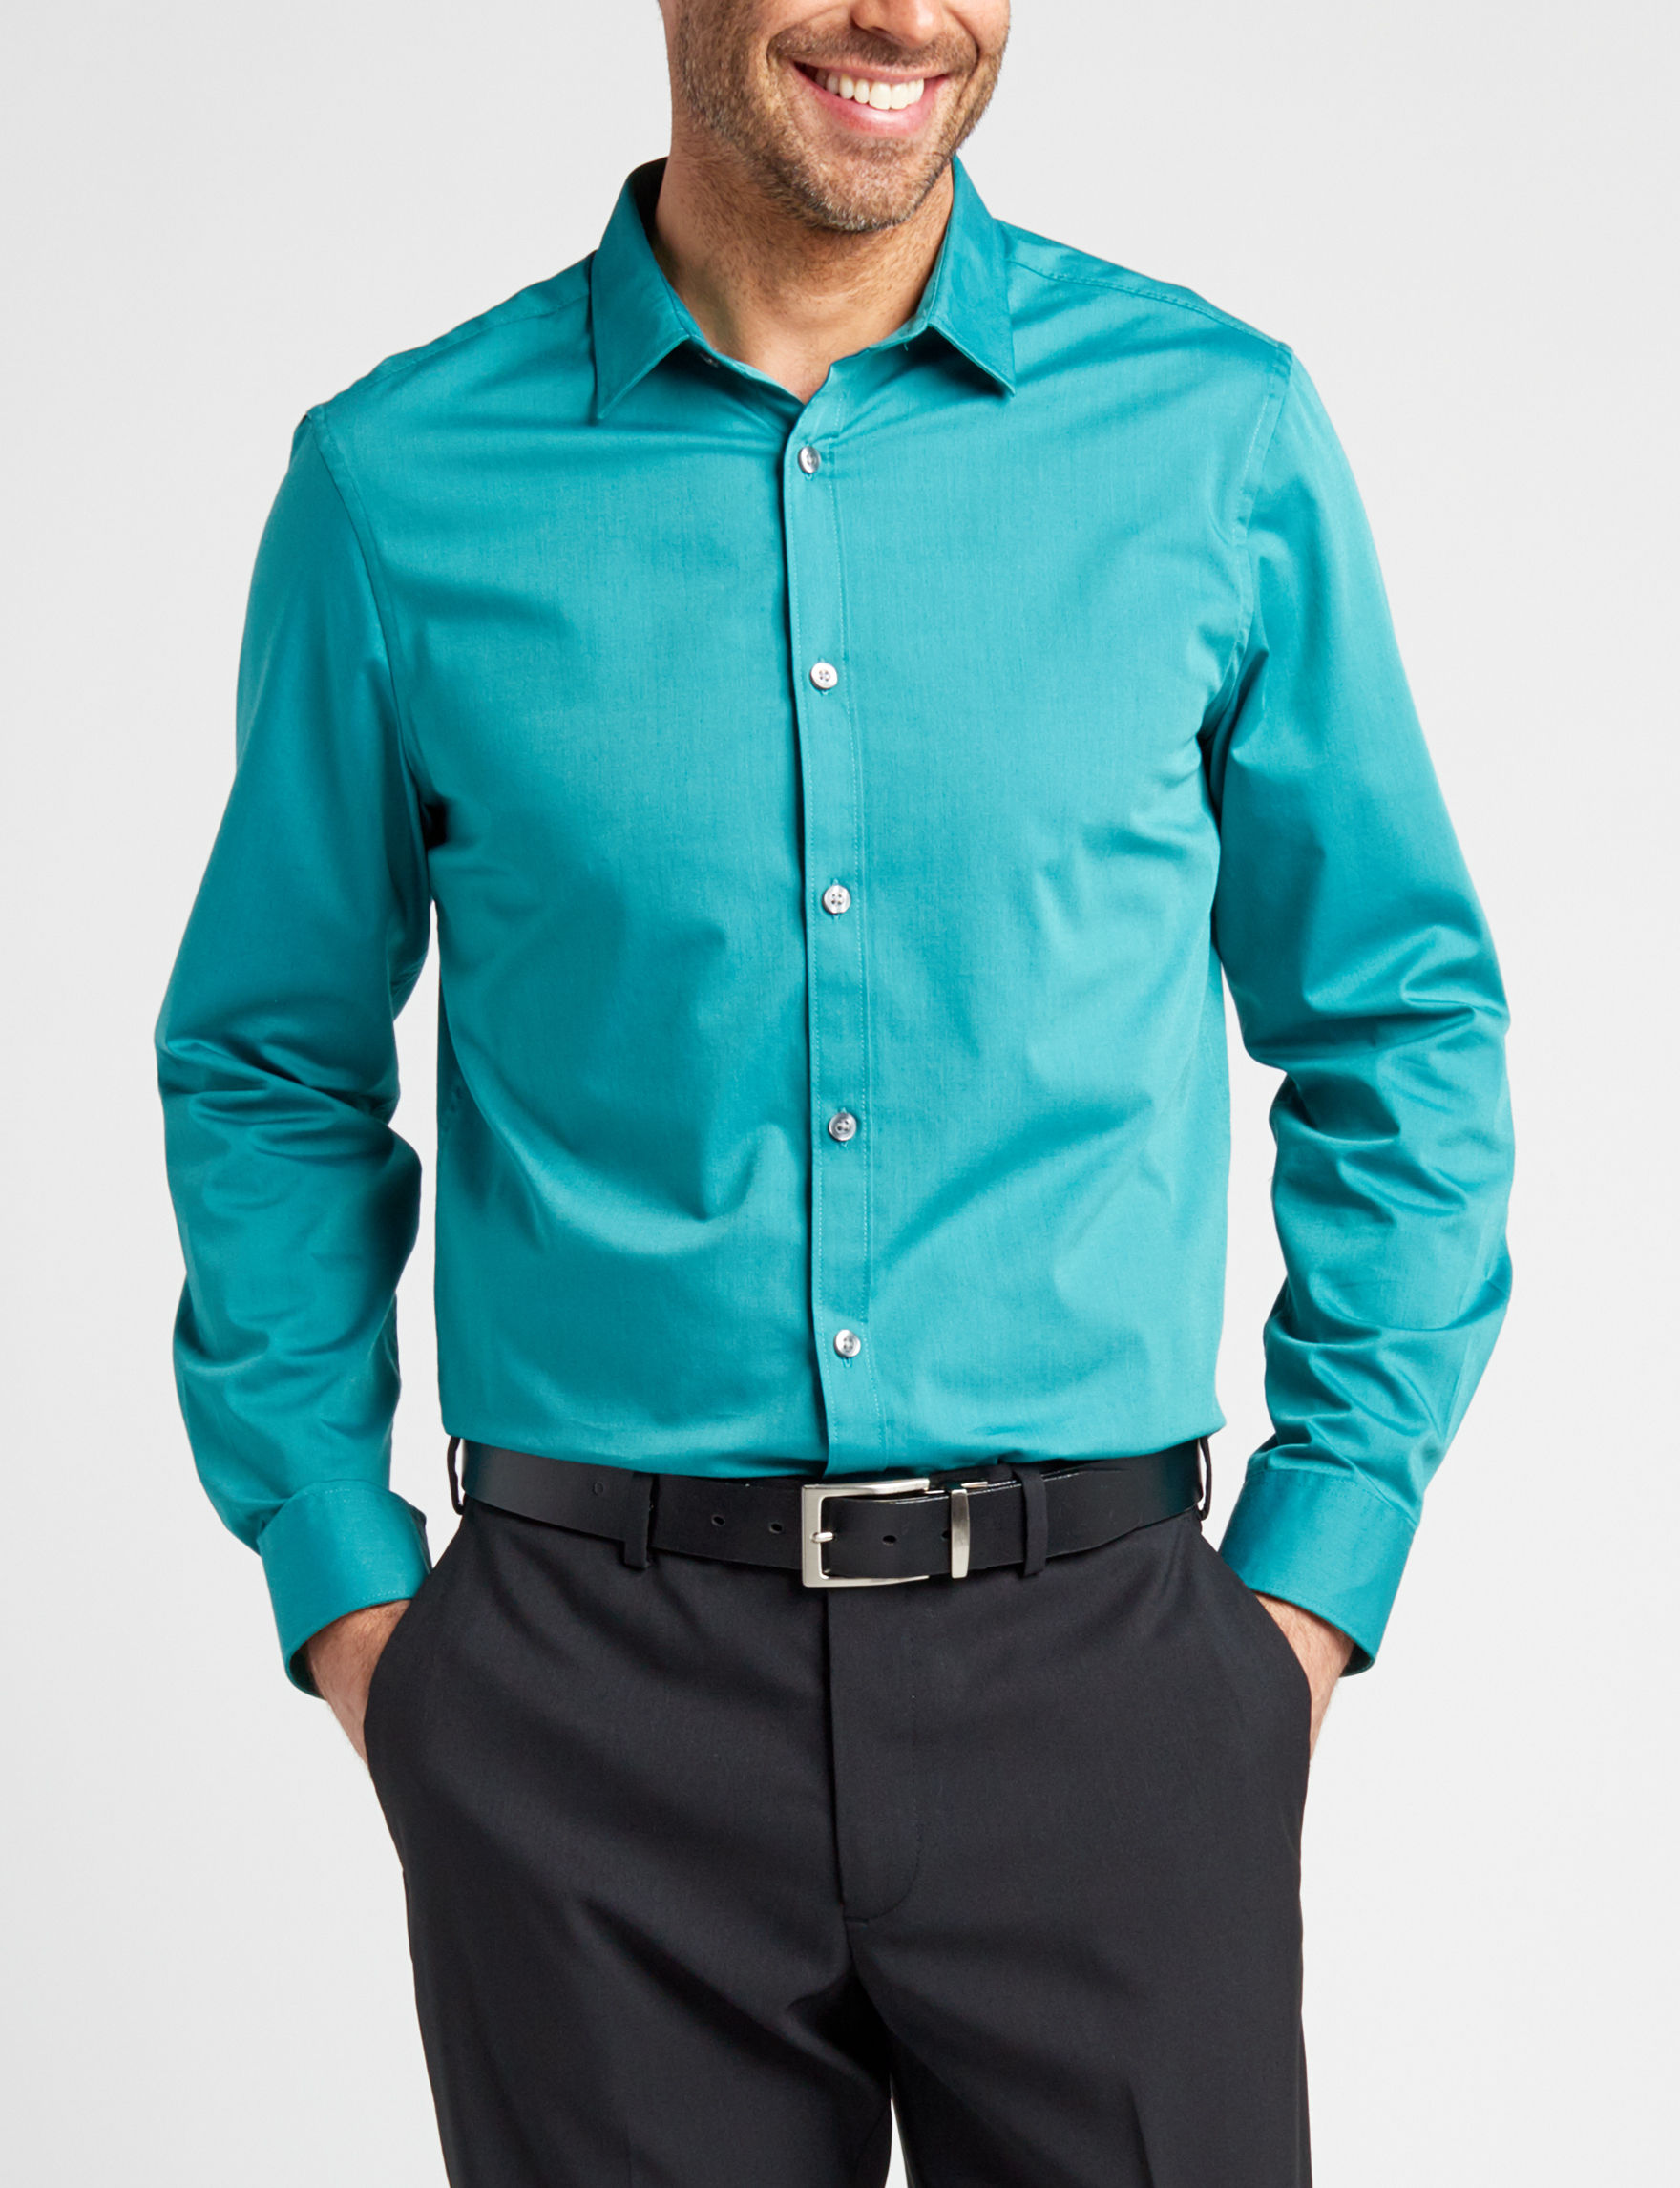 Axist Turquoise Casual Button Down Shirts